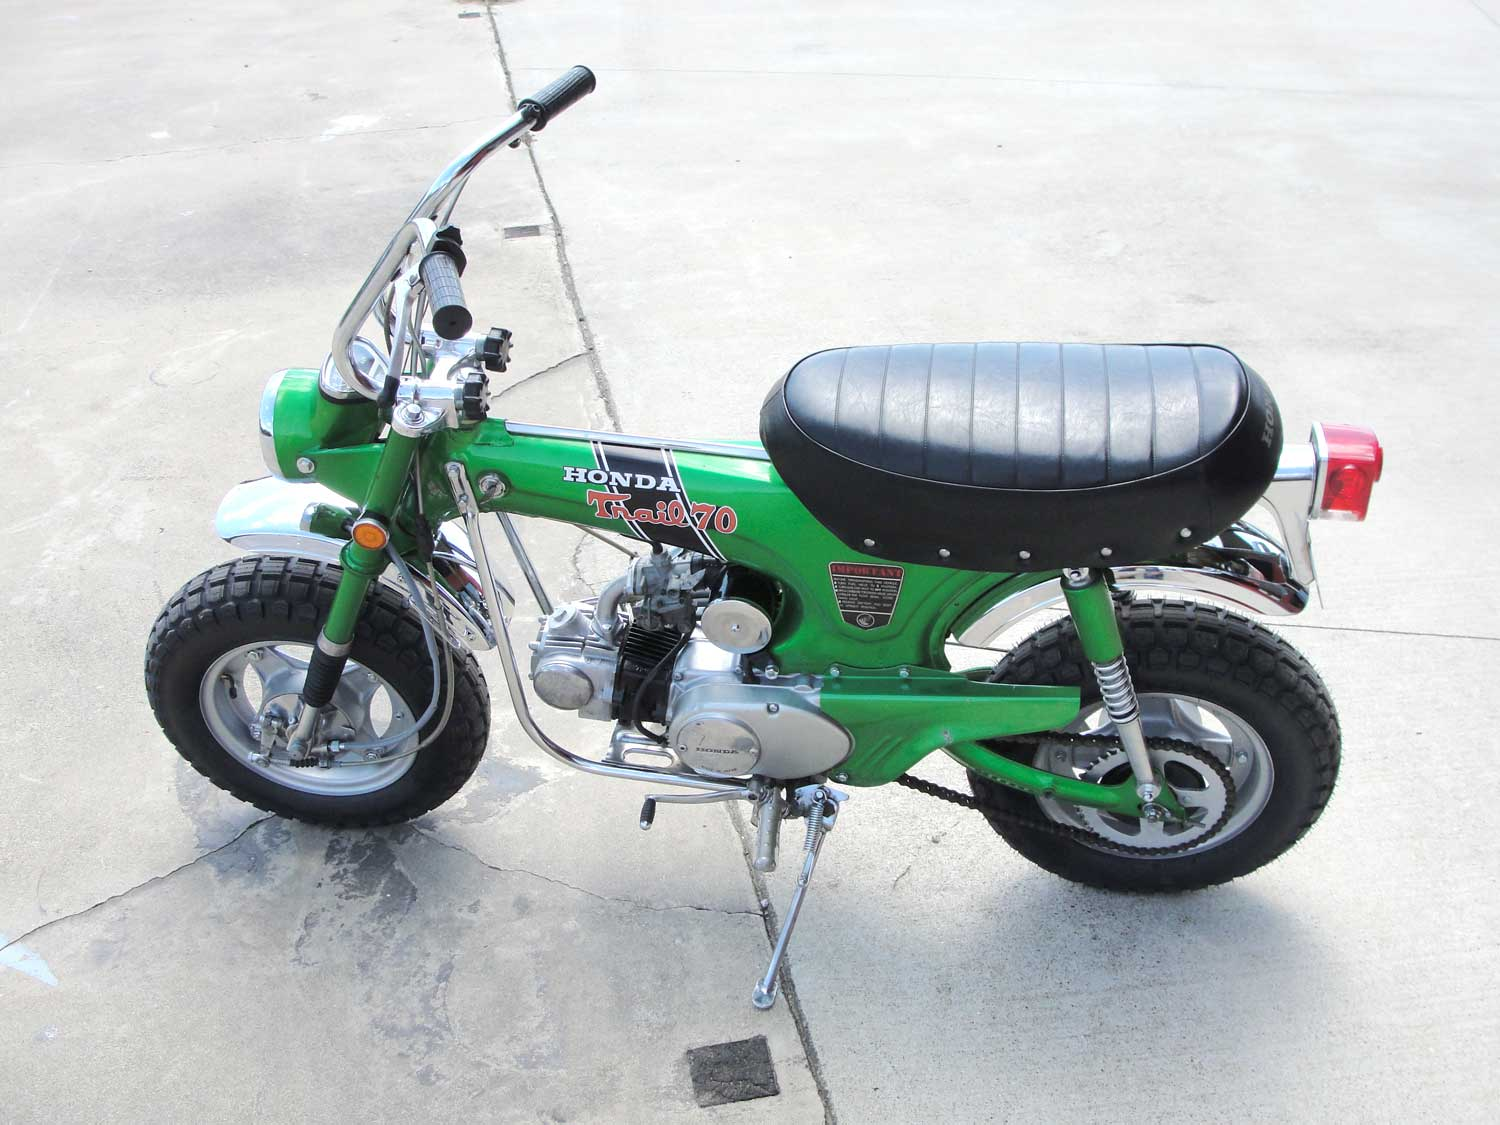 Bfs Ct70 H Ko Original Shriner Bike 899 Miles Emerald Green With 1970 Honda Battery If You Have Any Question About This Other Of The Bikes That We Will Be Listing Please Do Not Hesitate To Reach Out Price 467500 Sold